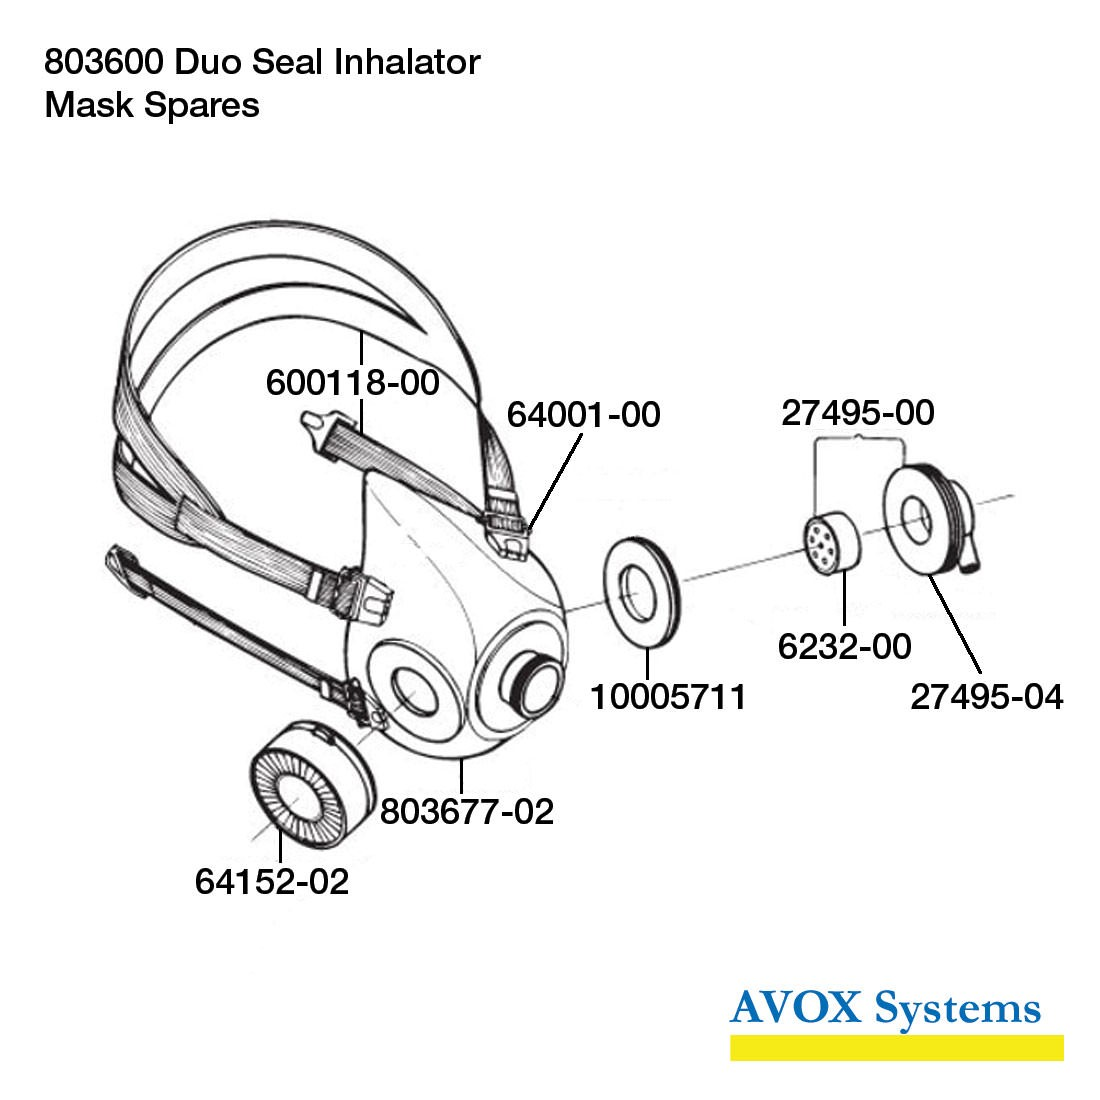 Avox 803600-03 Duo Seal Inhalator without 1st Stage Regulator without Microphone without Hose Assembly - Side - Mask Spares